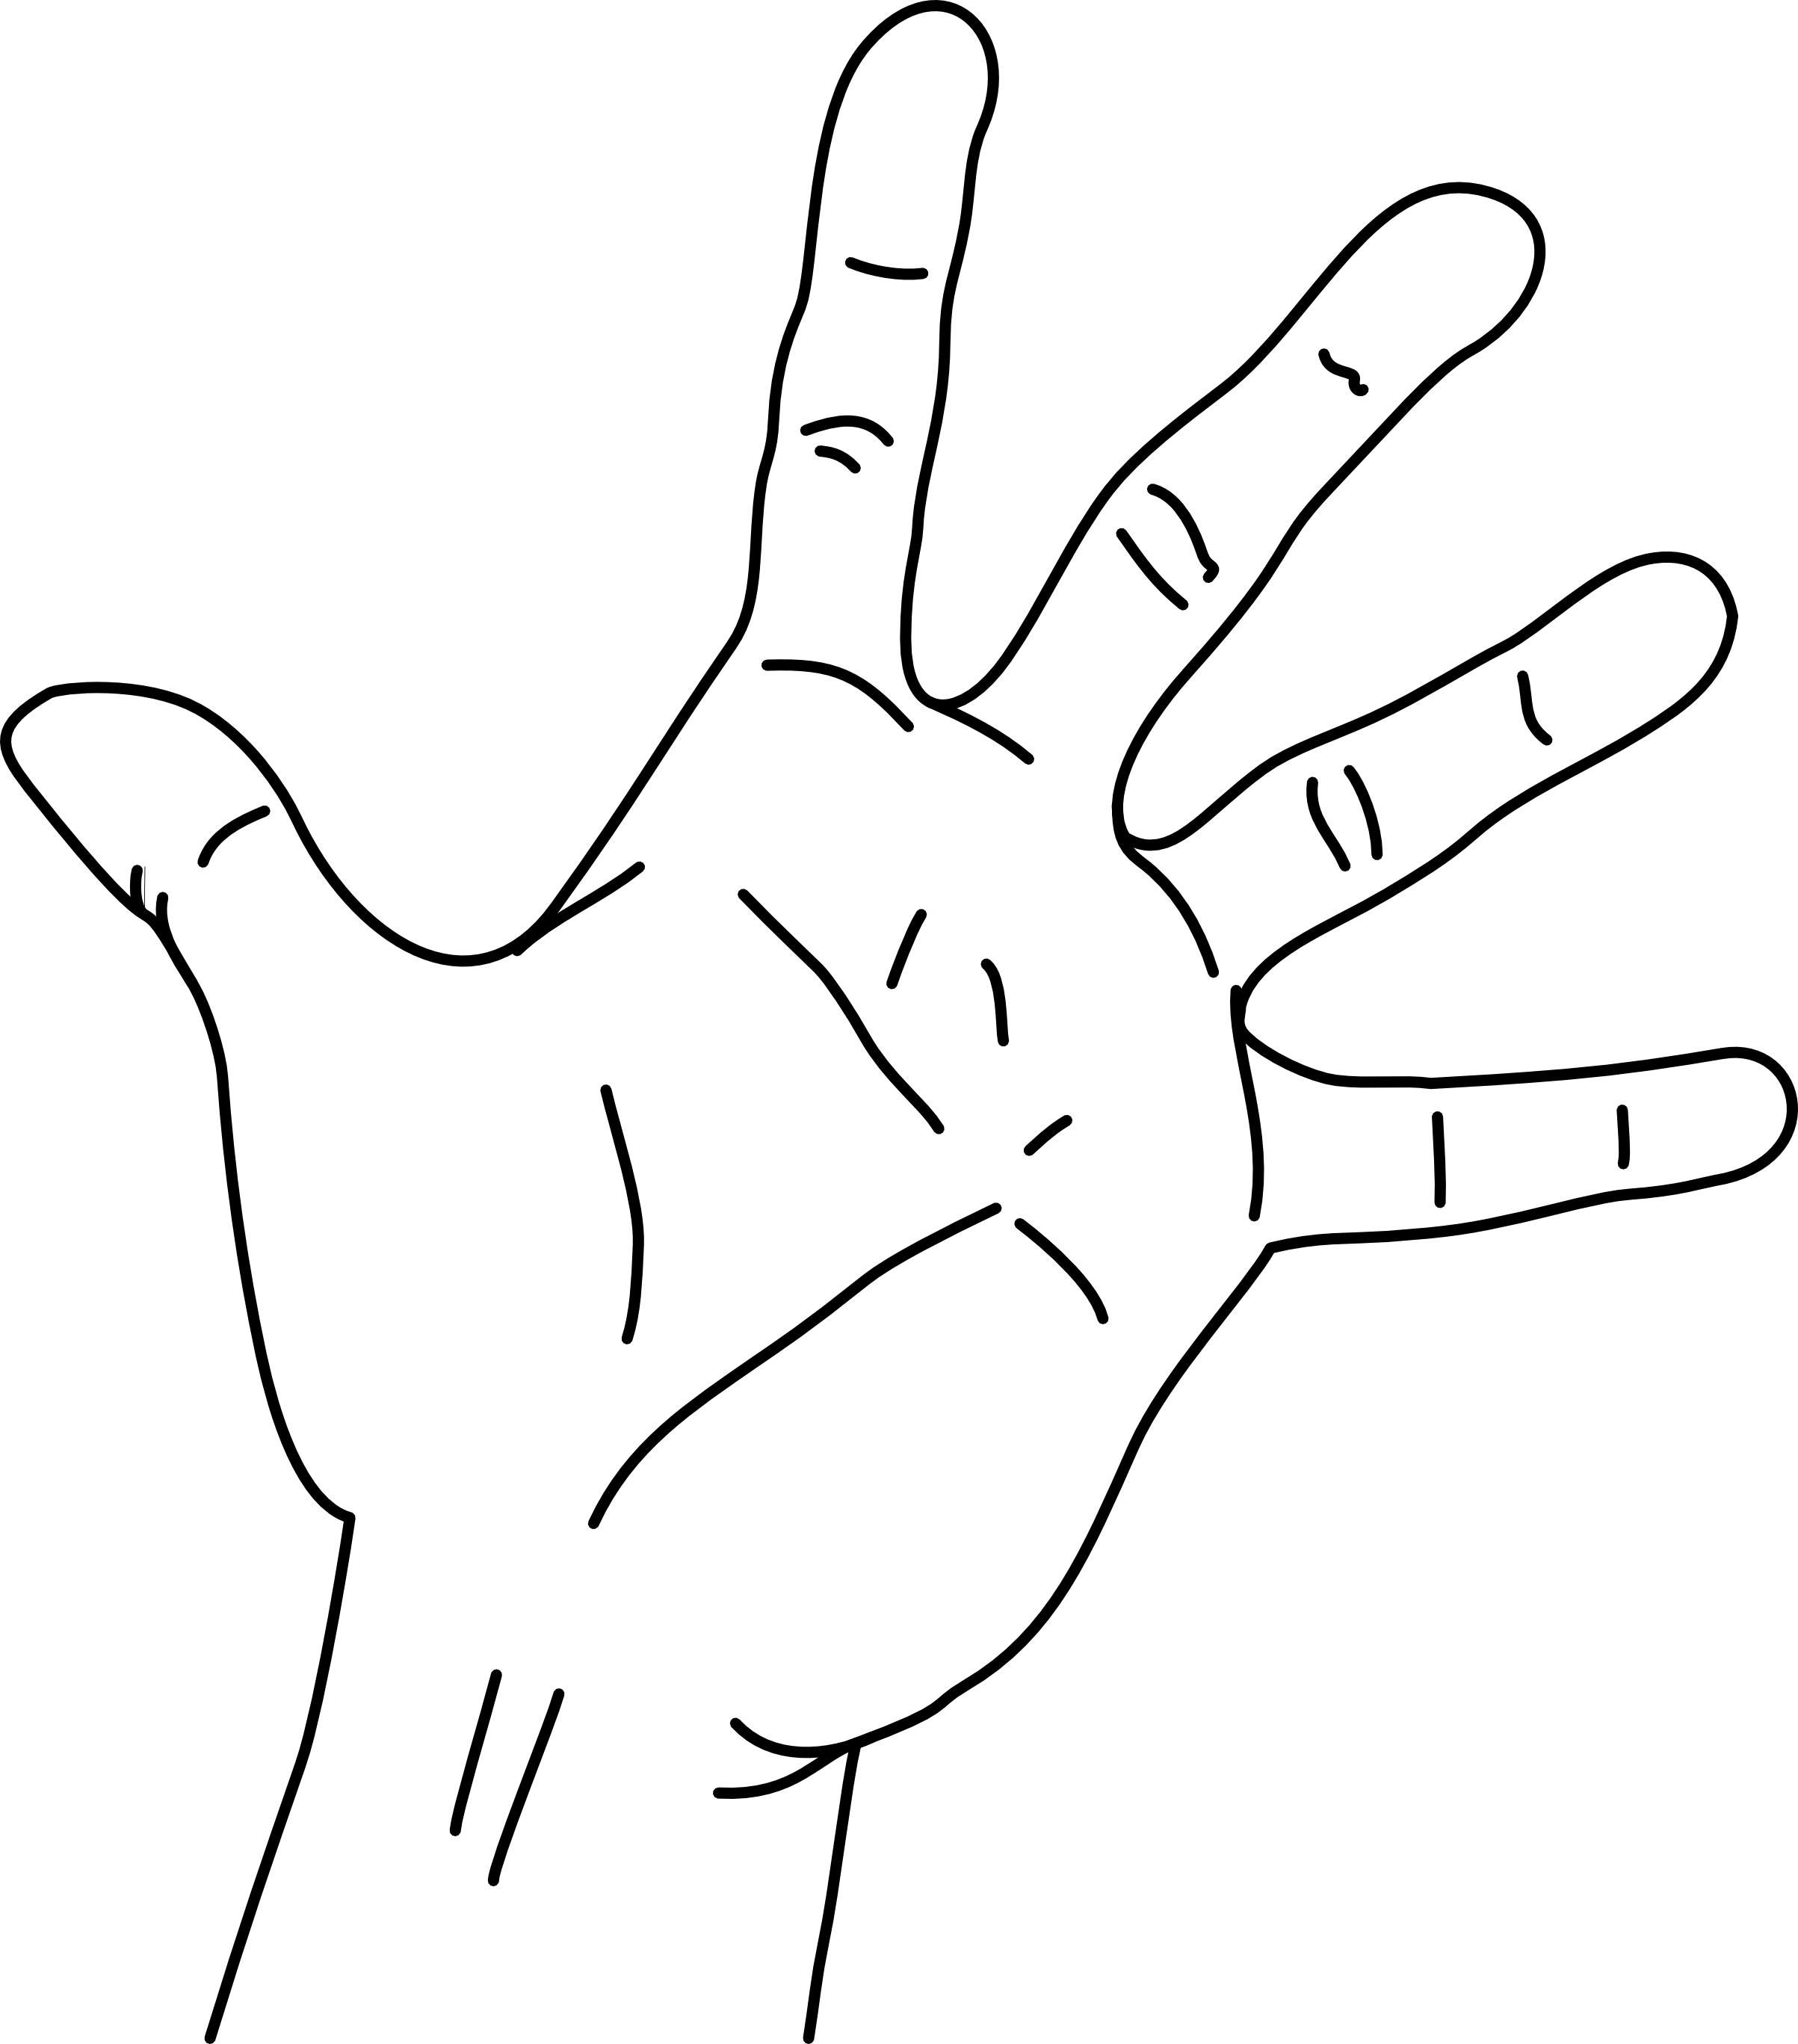 Finger clipart hand span. File measurements of the